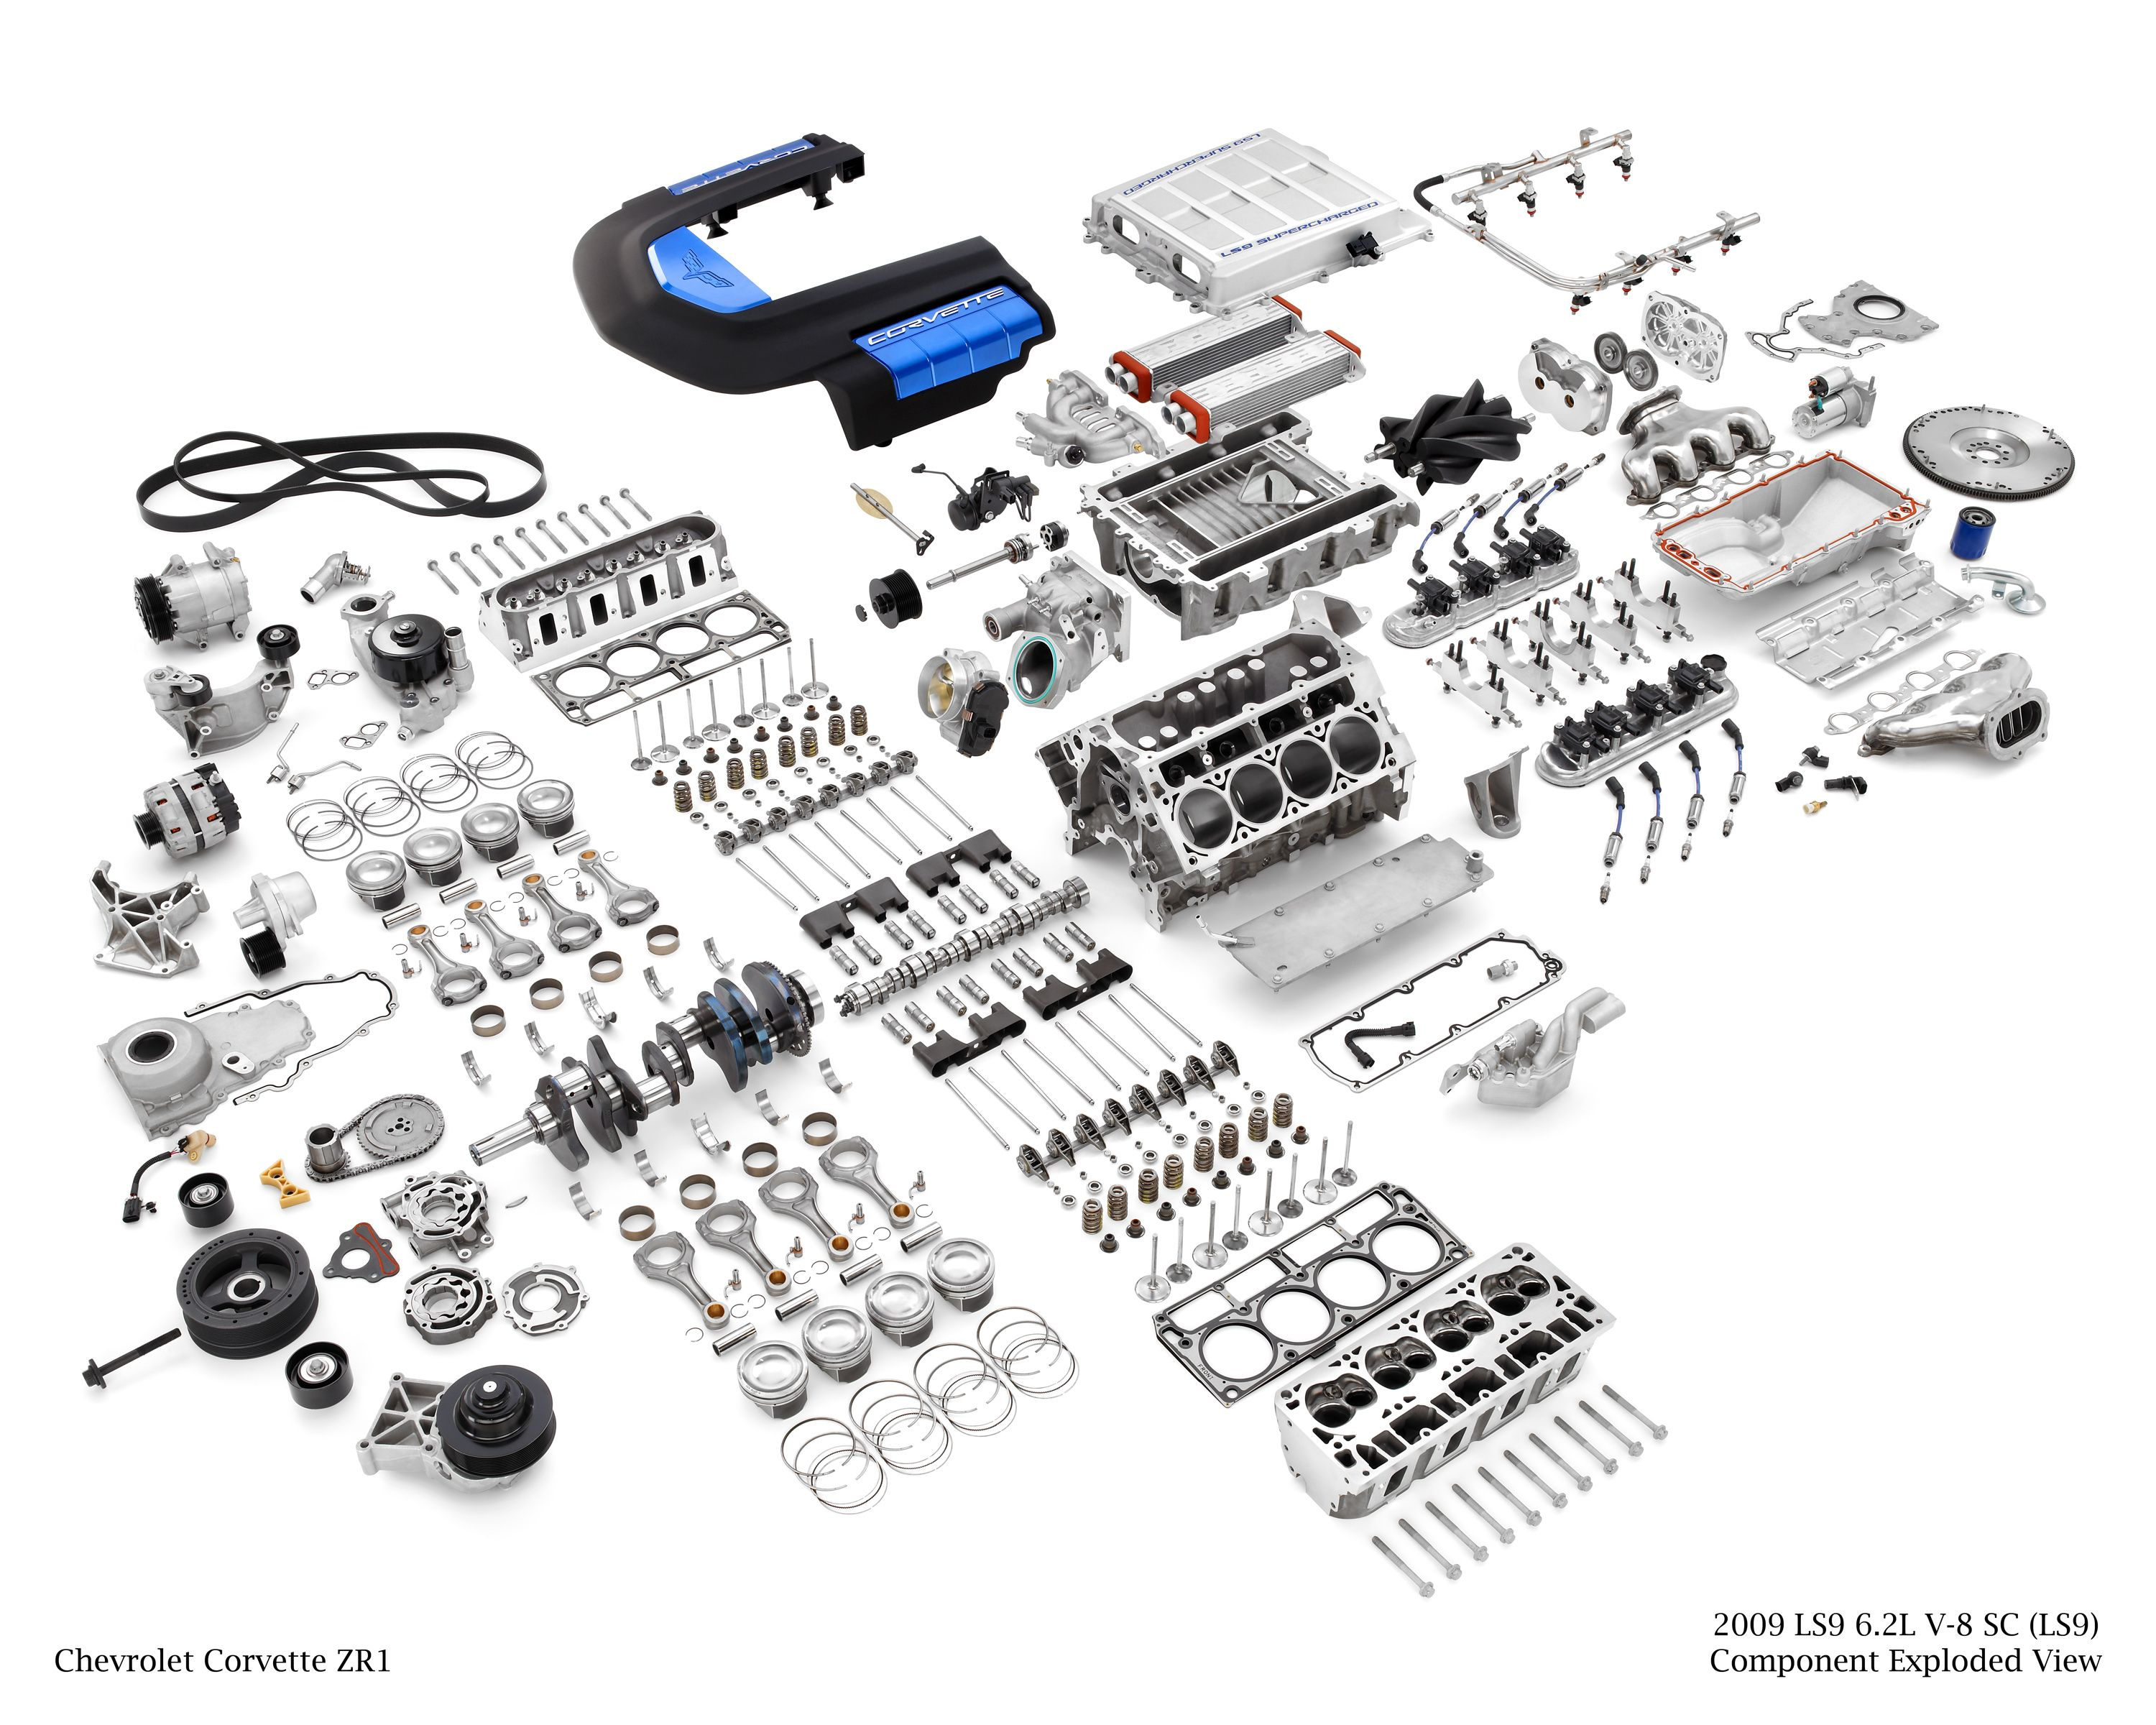 Corvette ZR1 LS9 Supercharged 6.2L V8 Engine, Exploded View